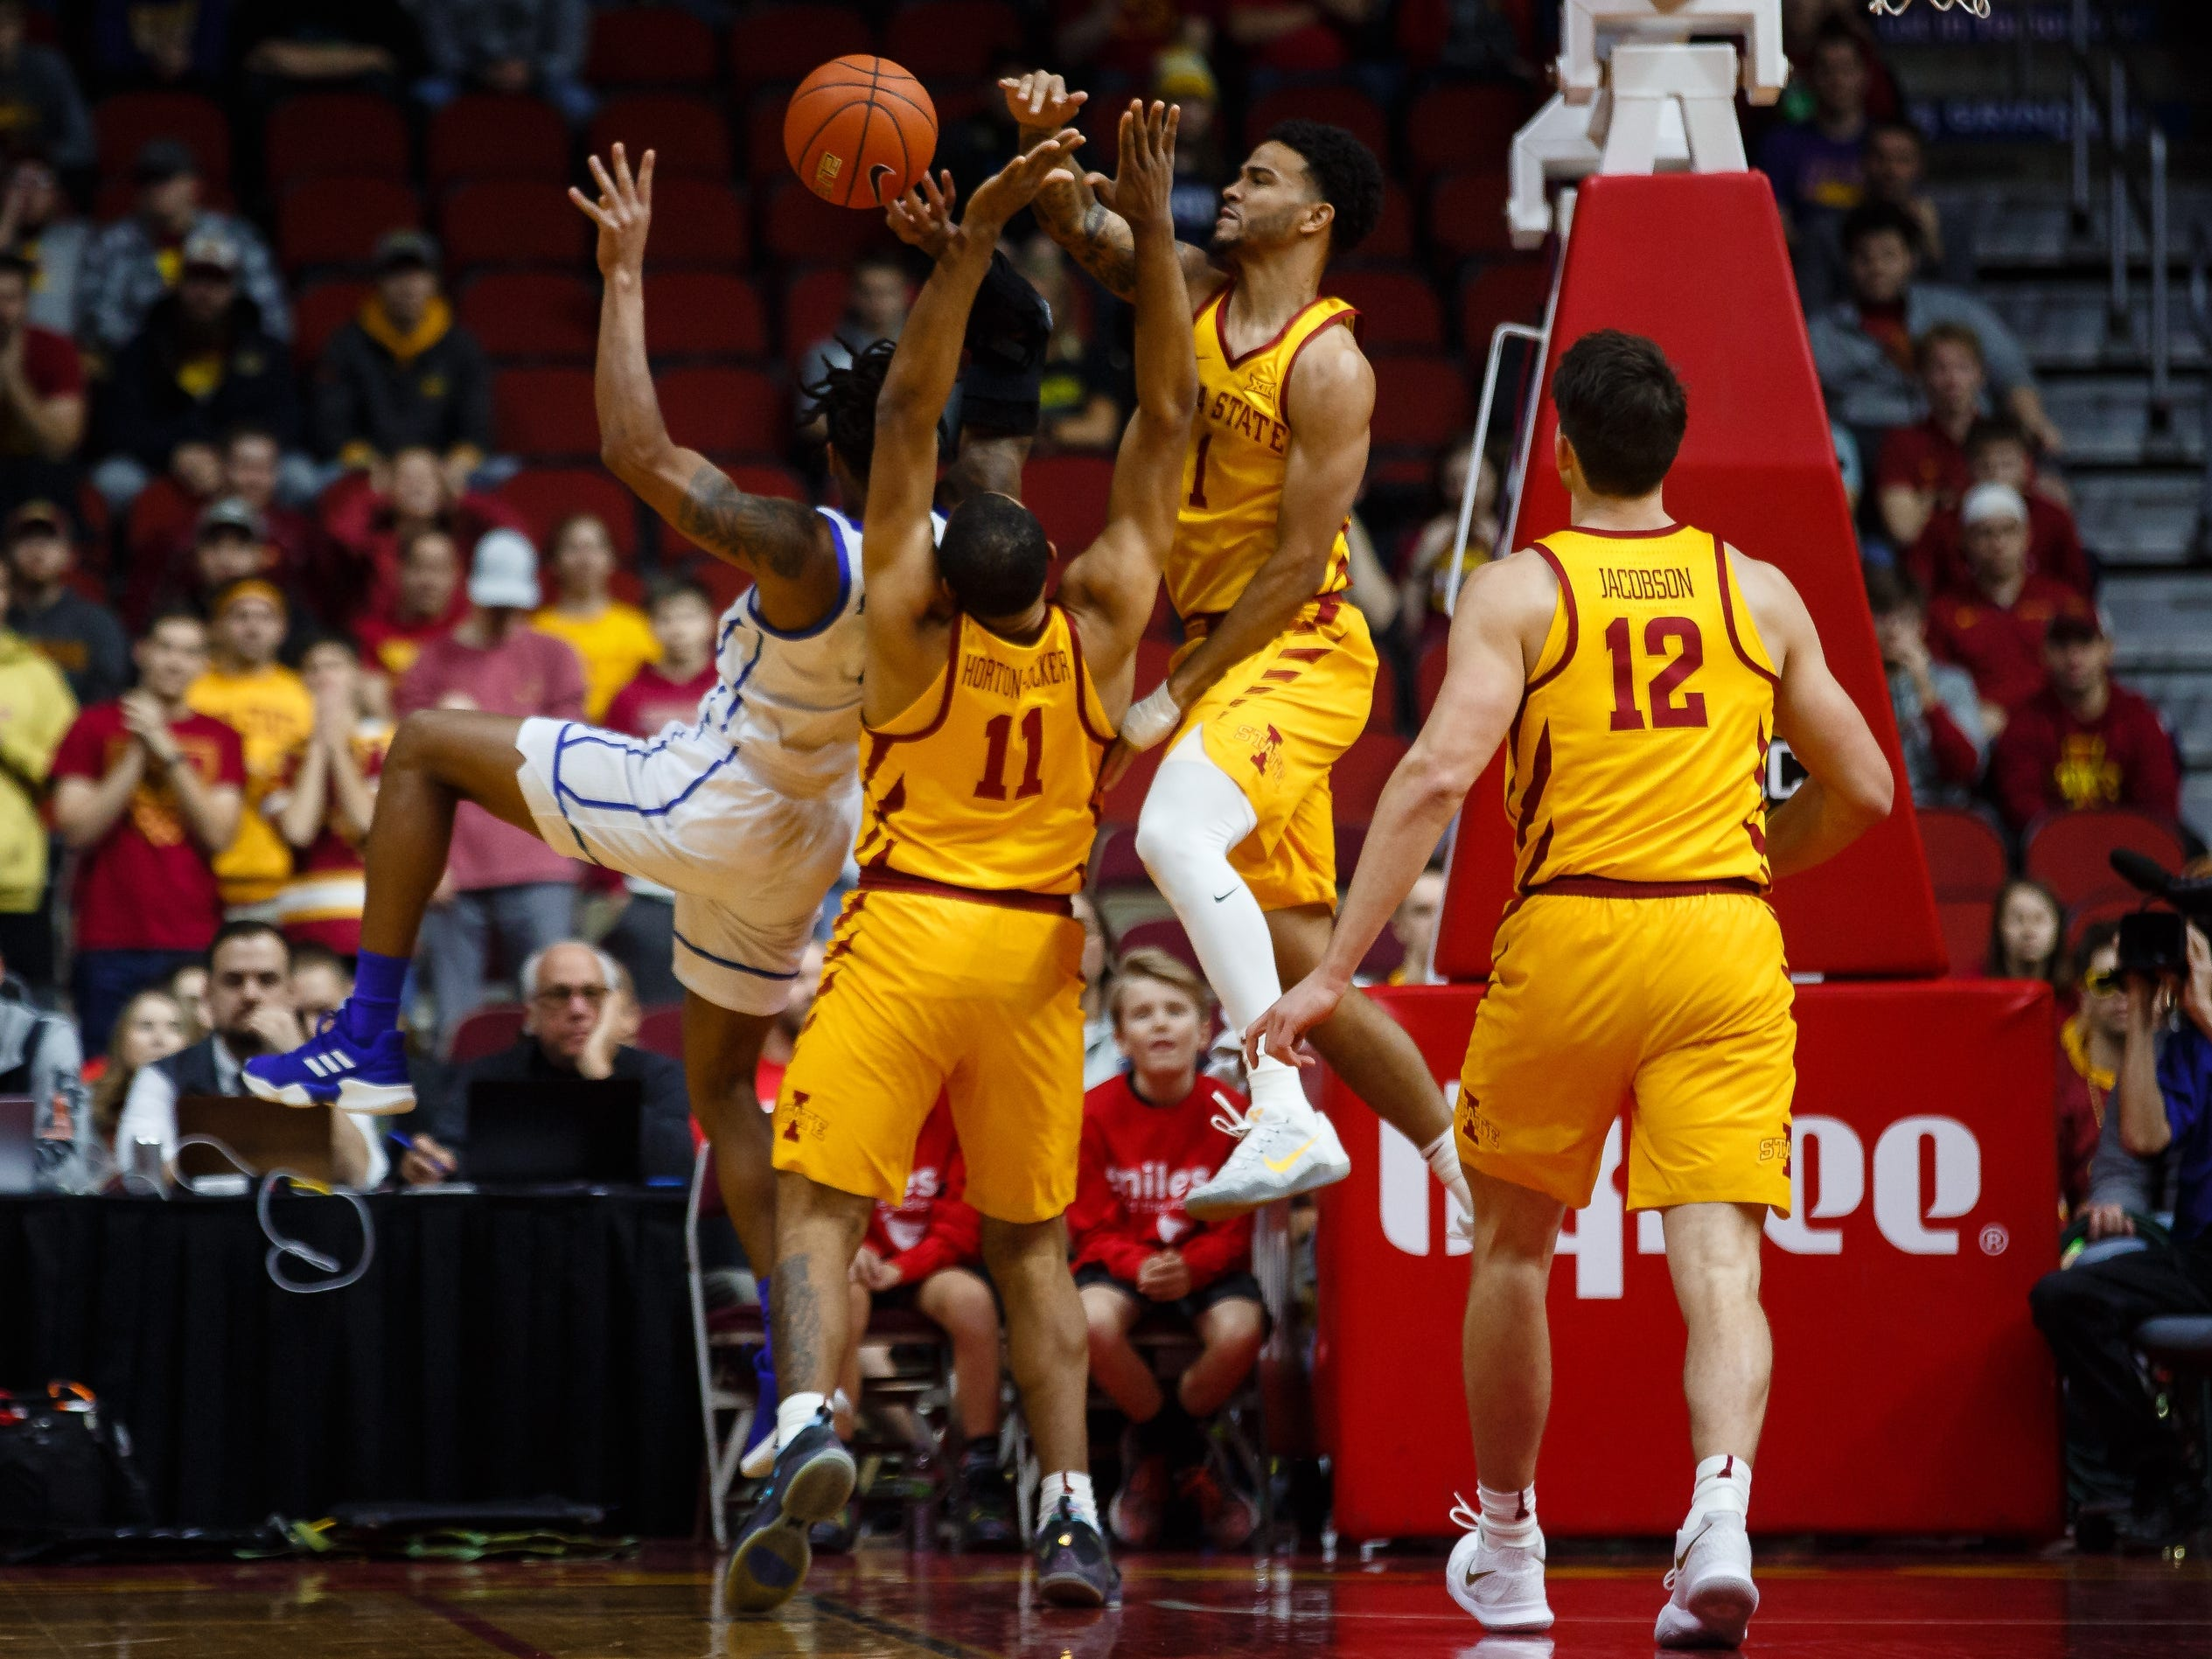 Iowa State's Nick Weiler-Babb (1) blocks the shot of Drake's TremellÊMurphy (2) during their game at the Hy-Vee Classic on Saturday, Dec. 15, 2018, in Des Moines. Iowa State takes a 36-32 lead into the half.